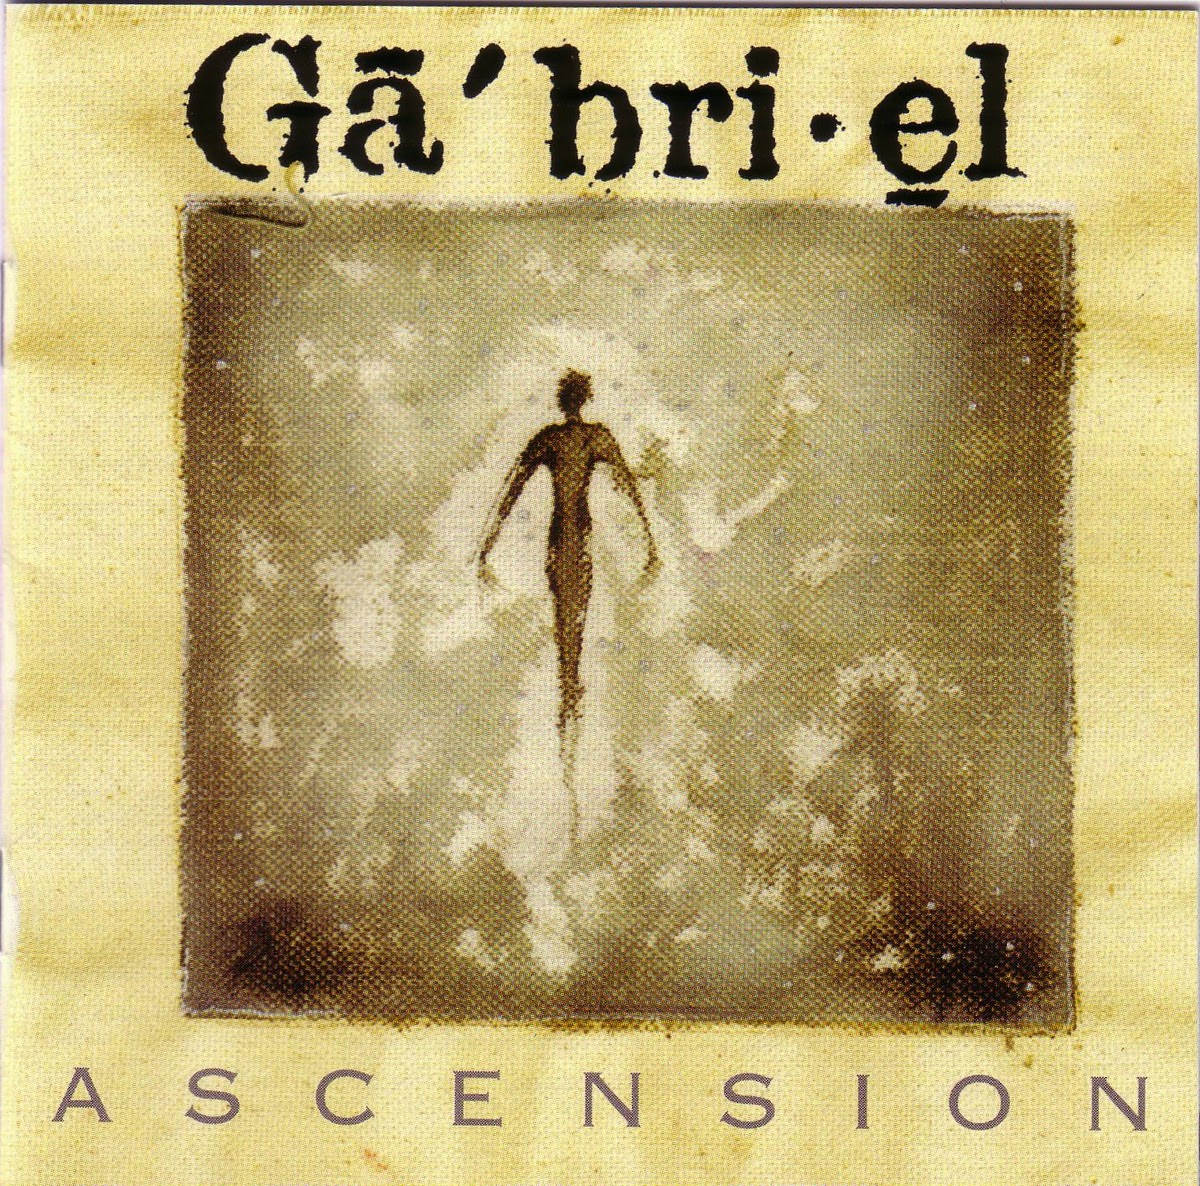 Gabriel - Ascension (2000) - Marc Atkinson